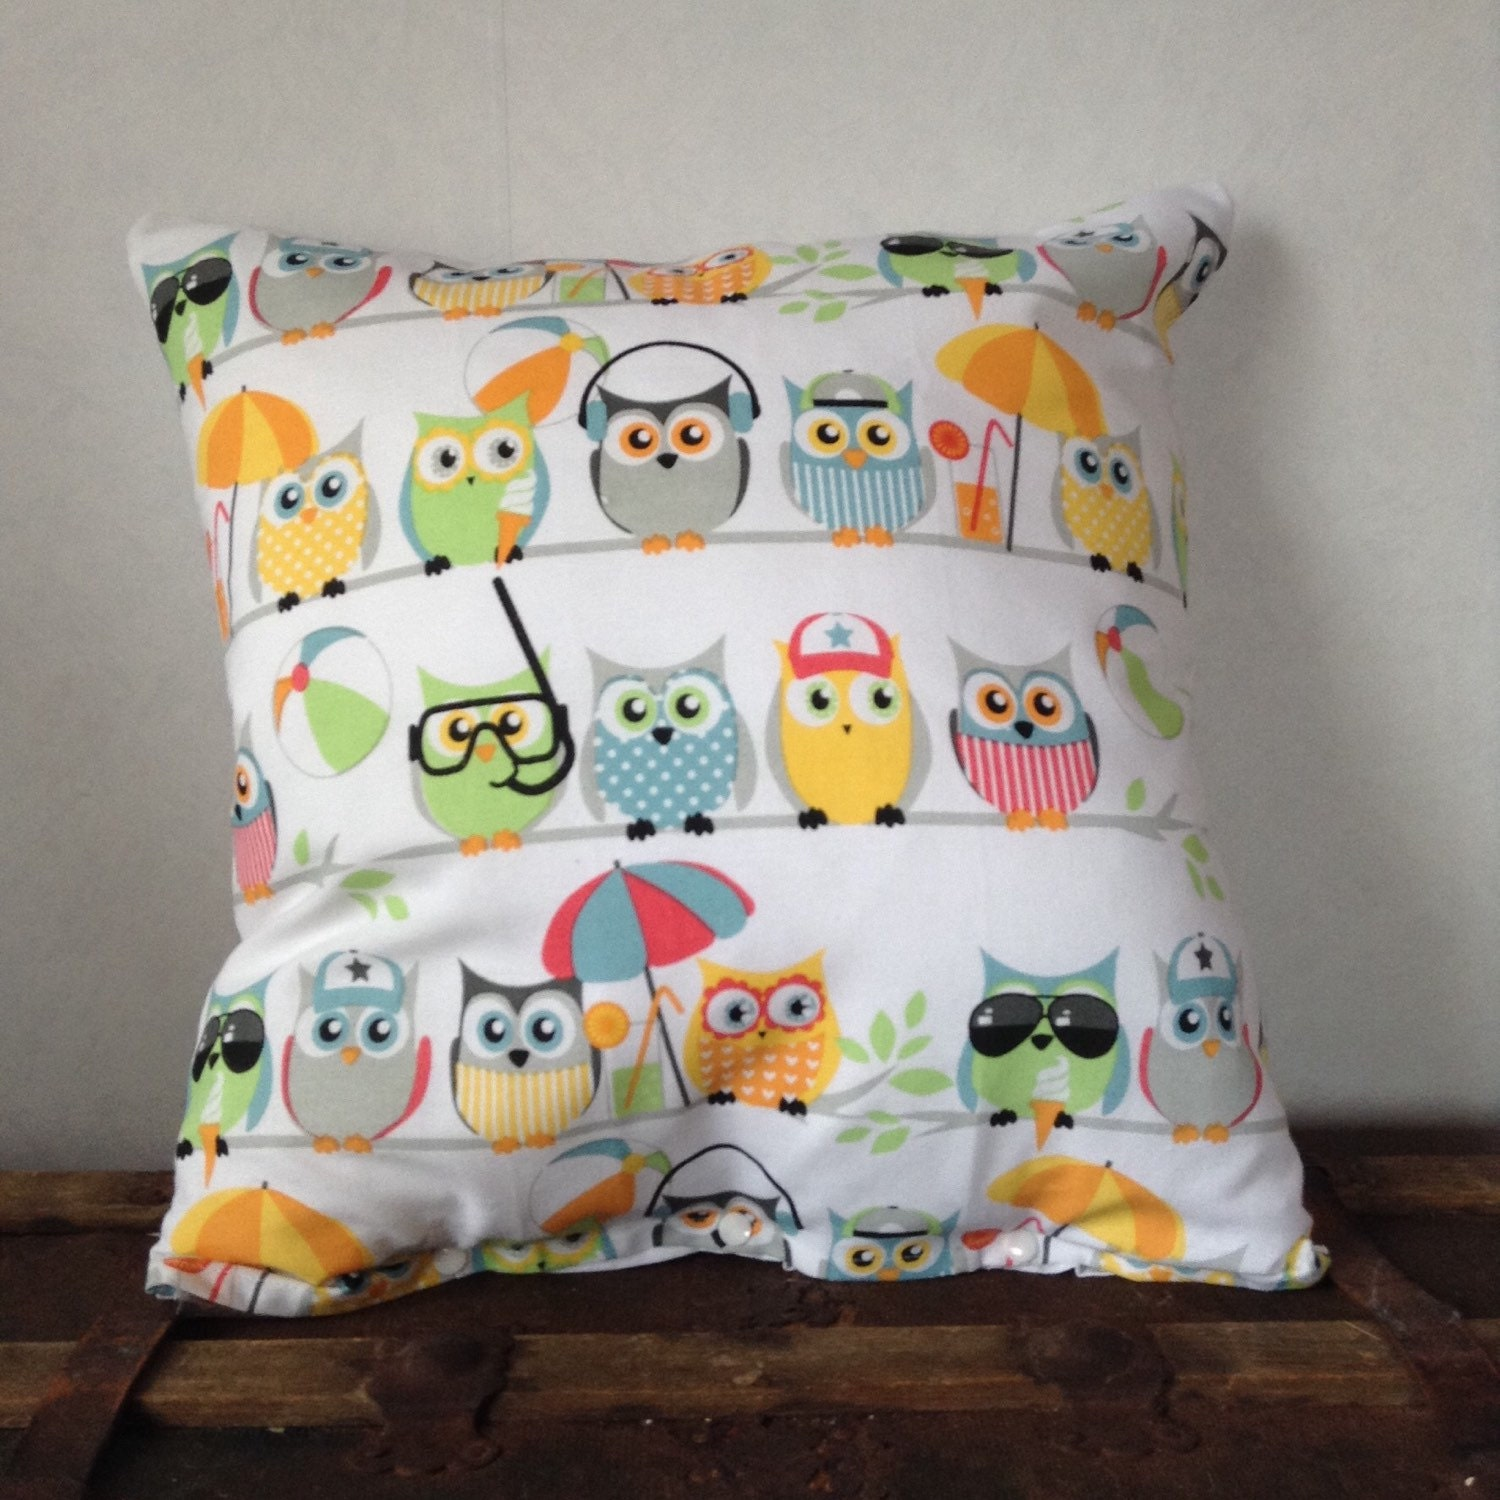 Owl Throw Pillow Covers : Cute owl pillow cover for throw pillows accent by leonorafi